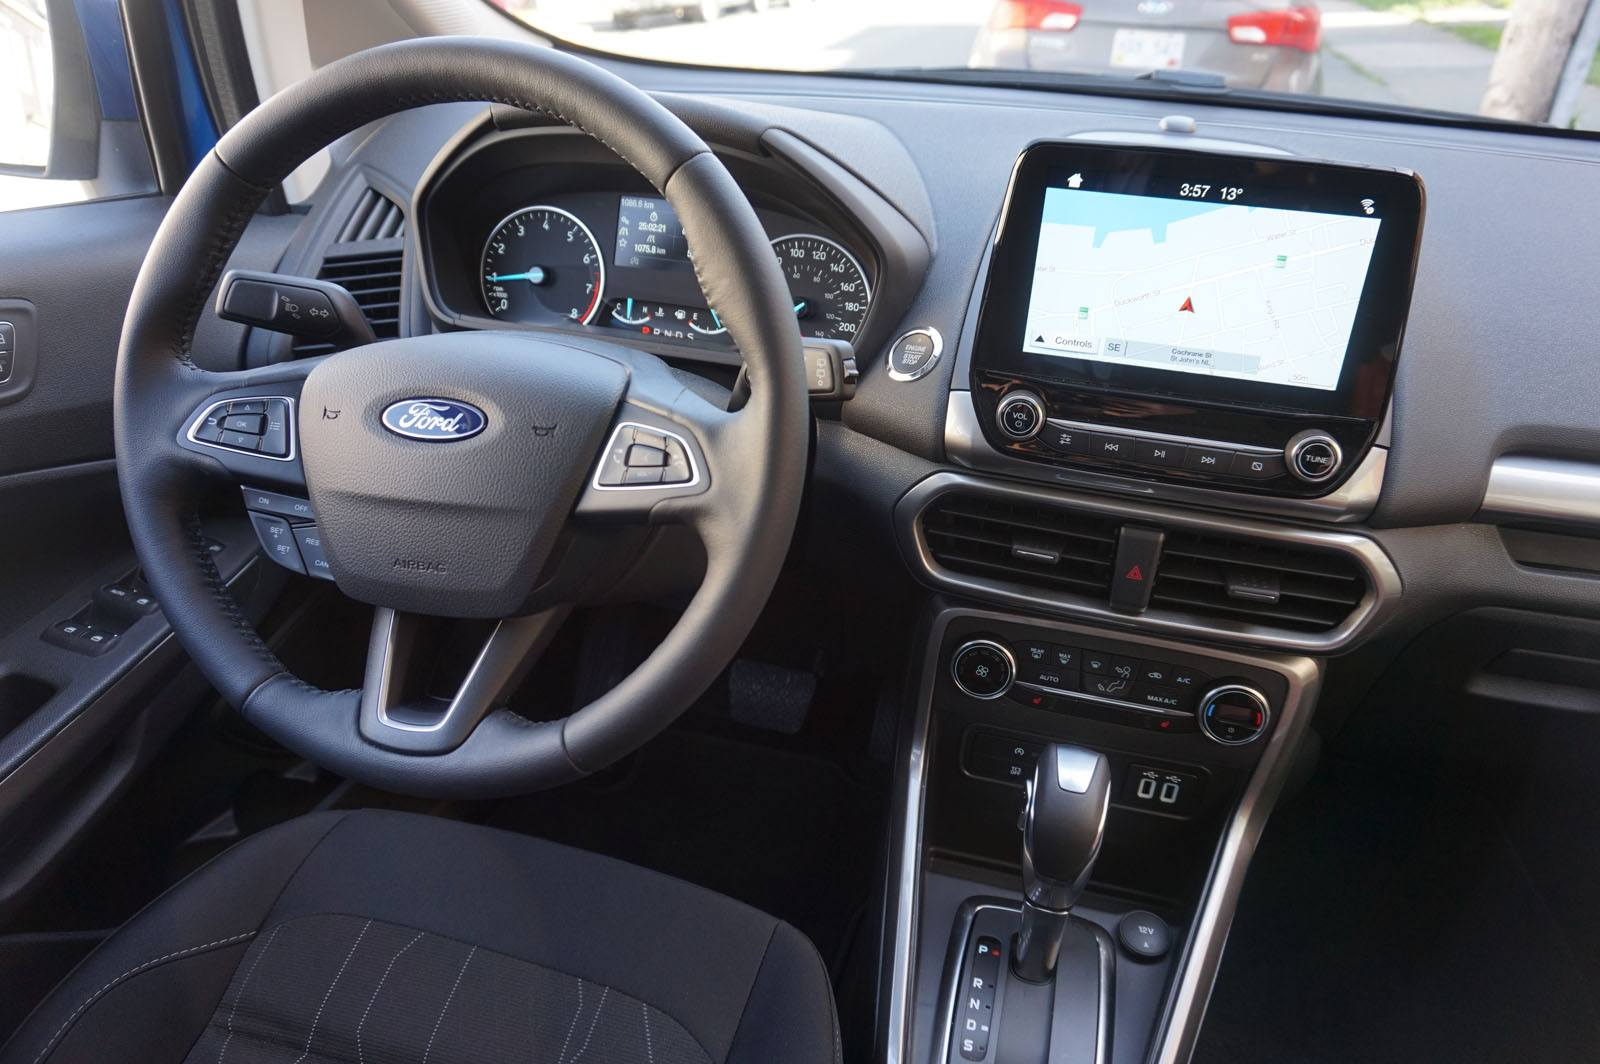 2018 Ford EcoSport Review - Dashboard